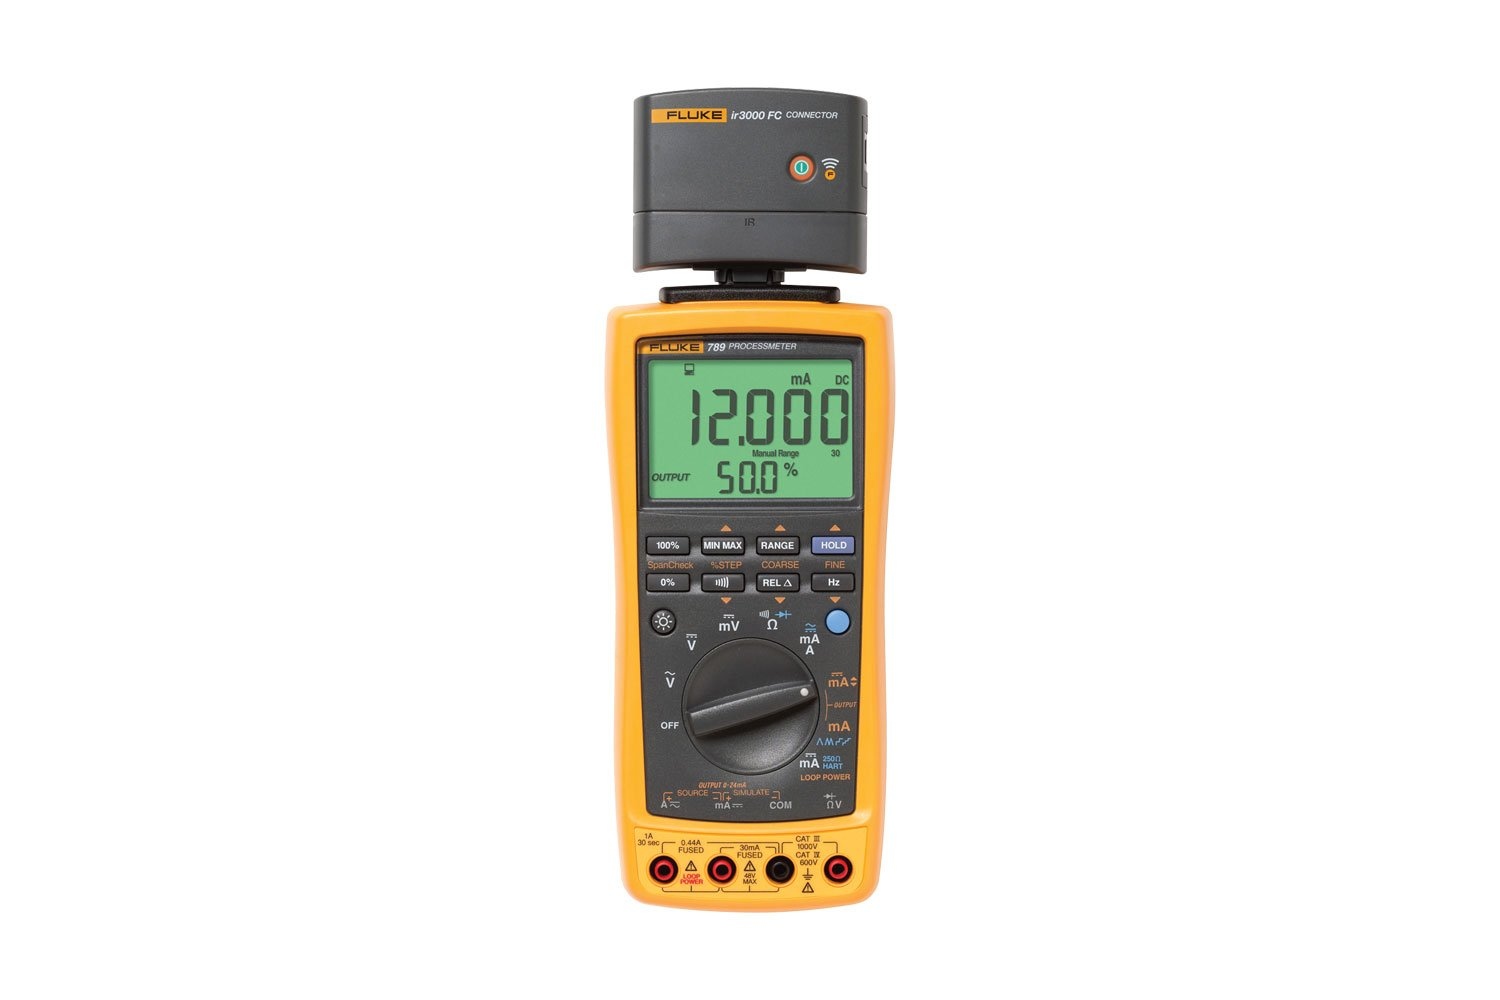 Fluke 789 Processmeter With Connect Digital Multimeter From Reliable Circuit Suppliers On